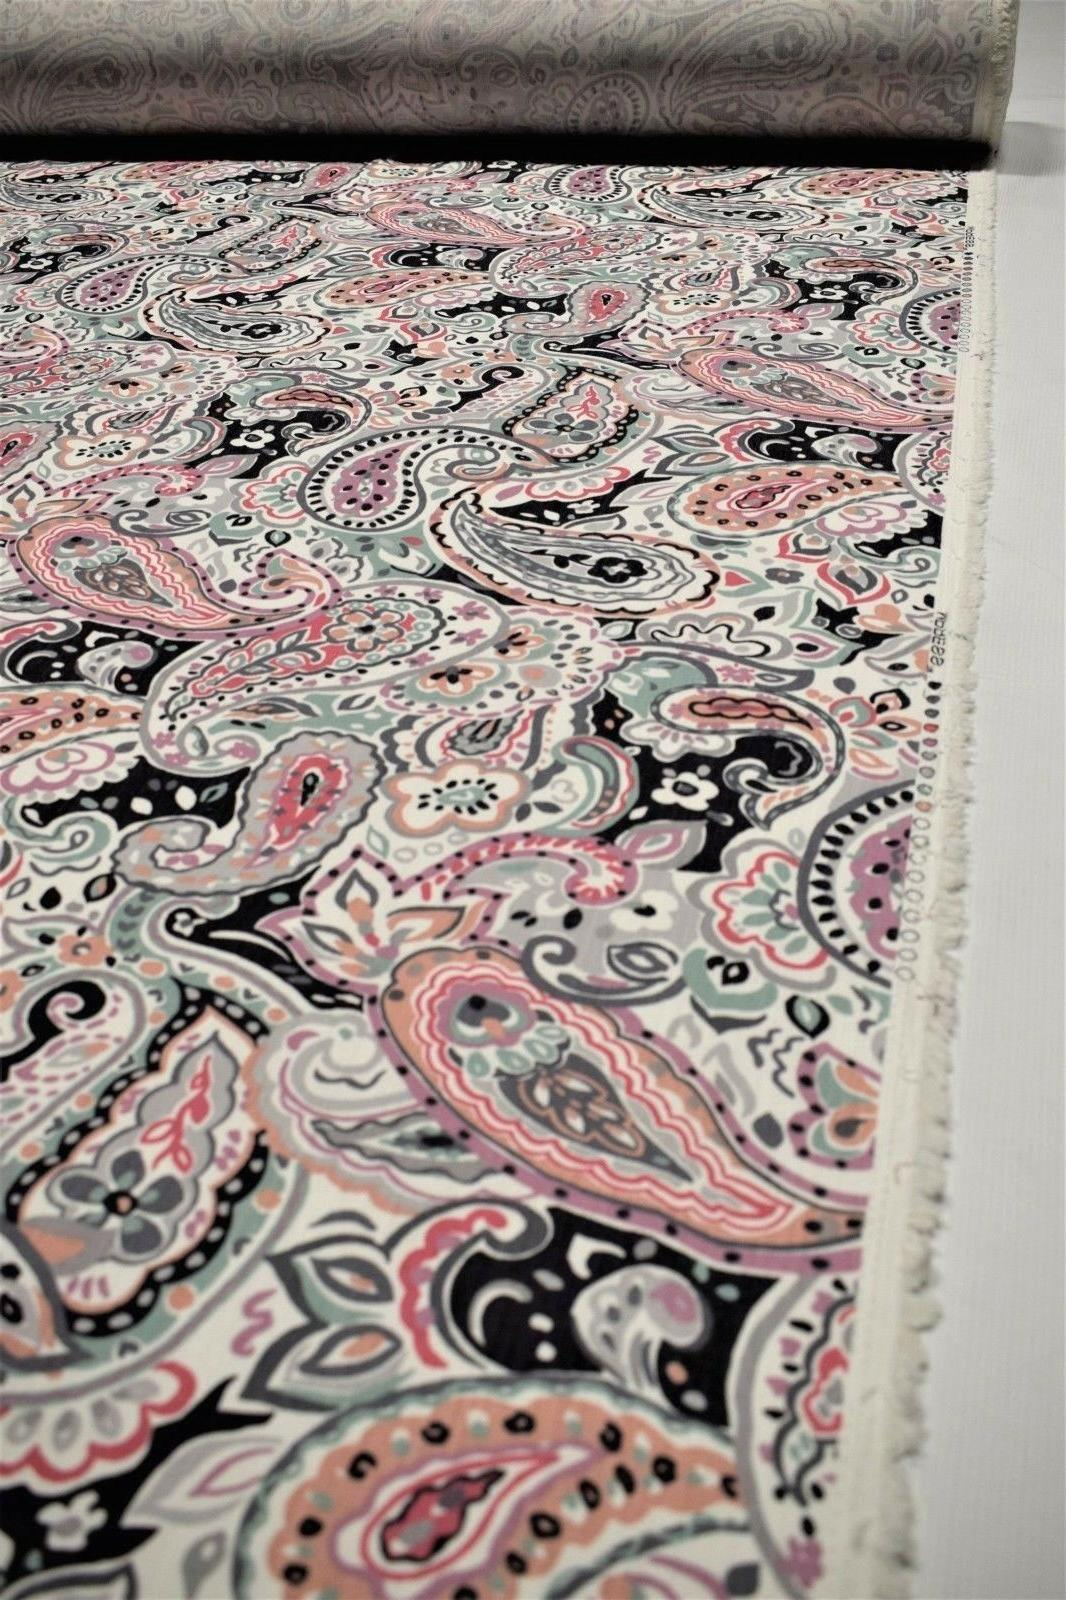 Upholstery Drapery Paisley Floral Cotton Pink Teal Fabric